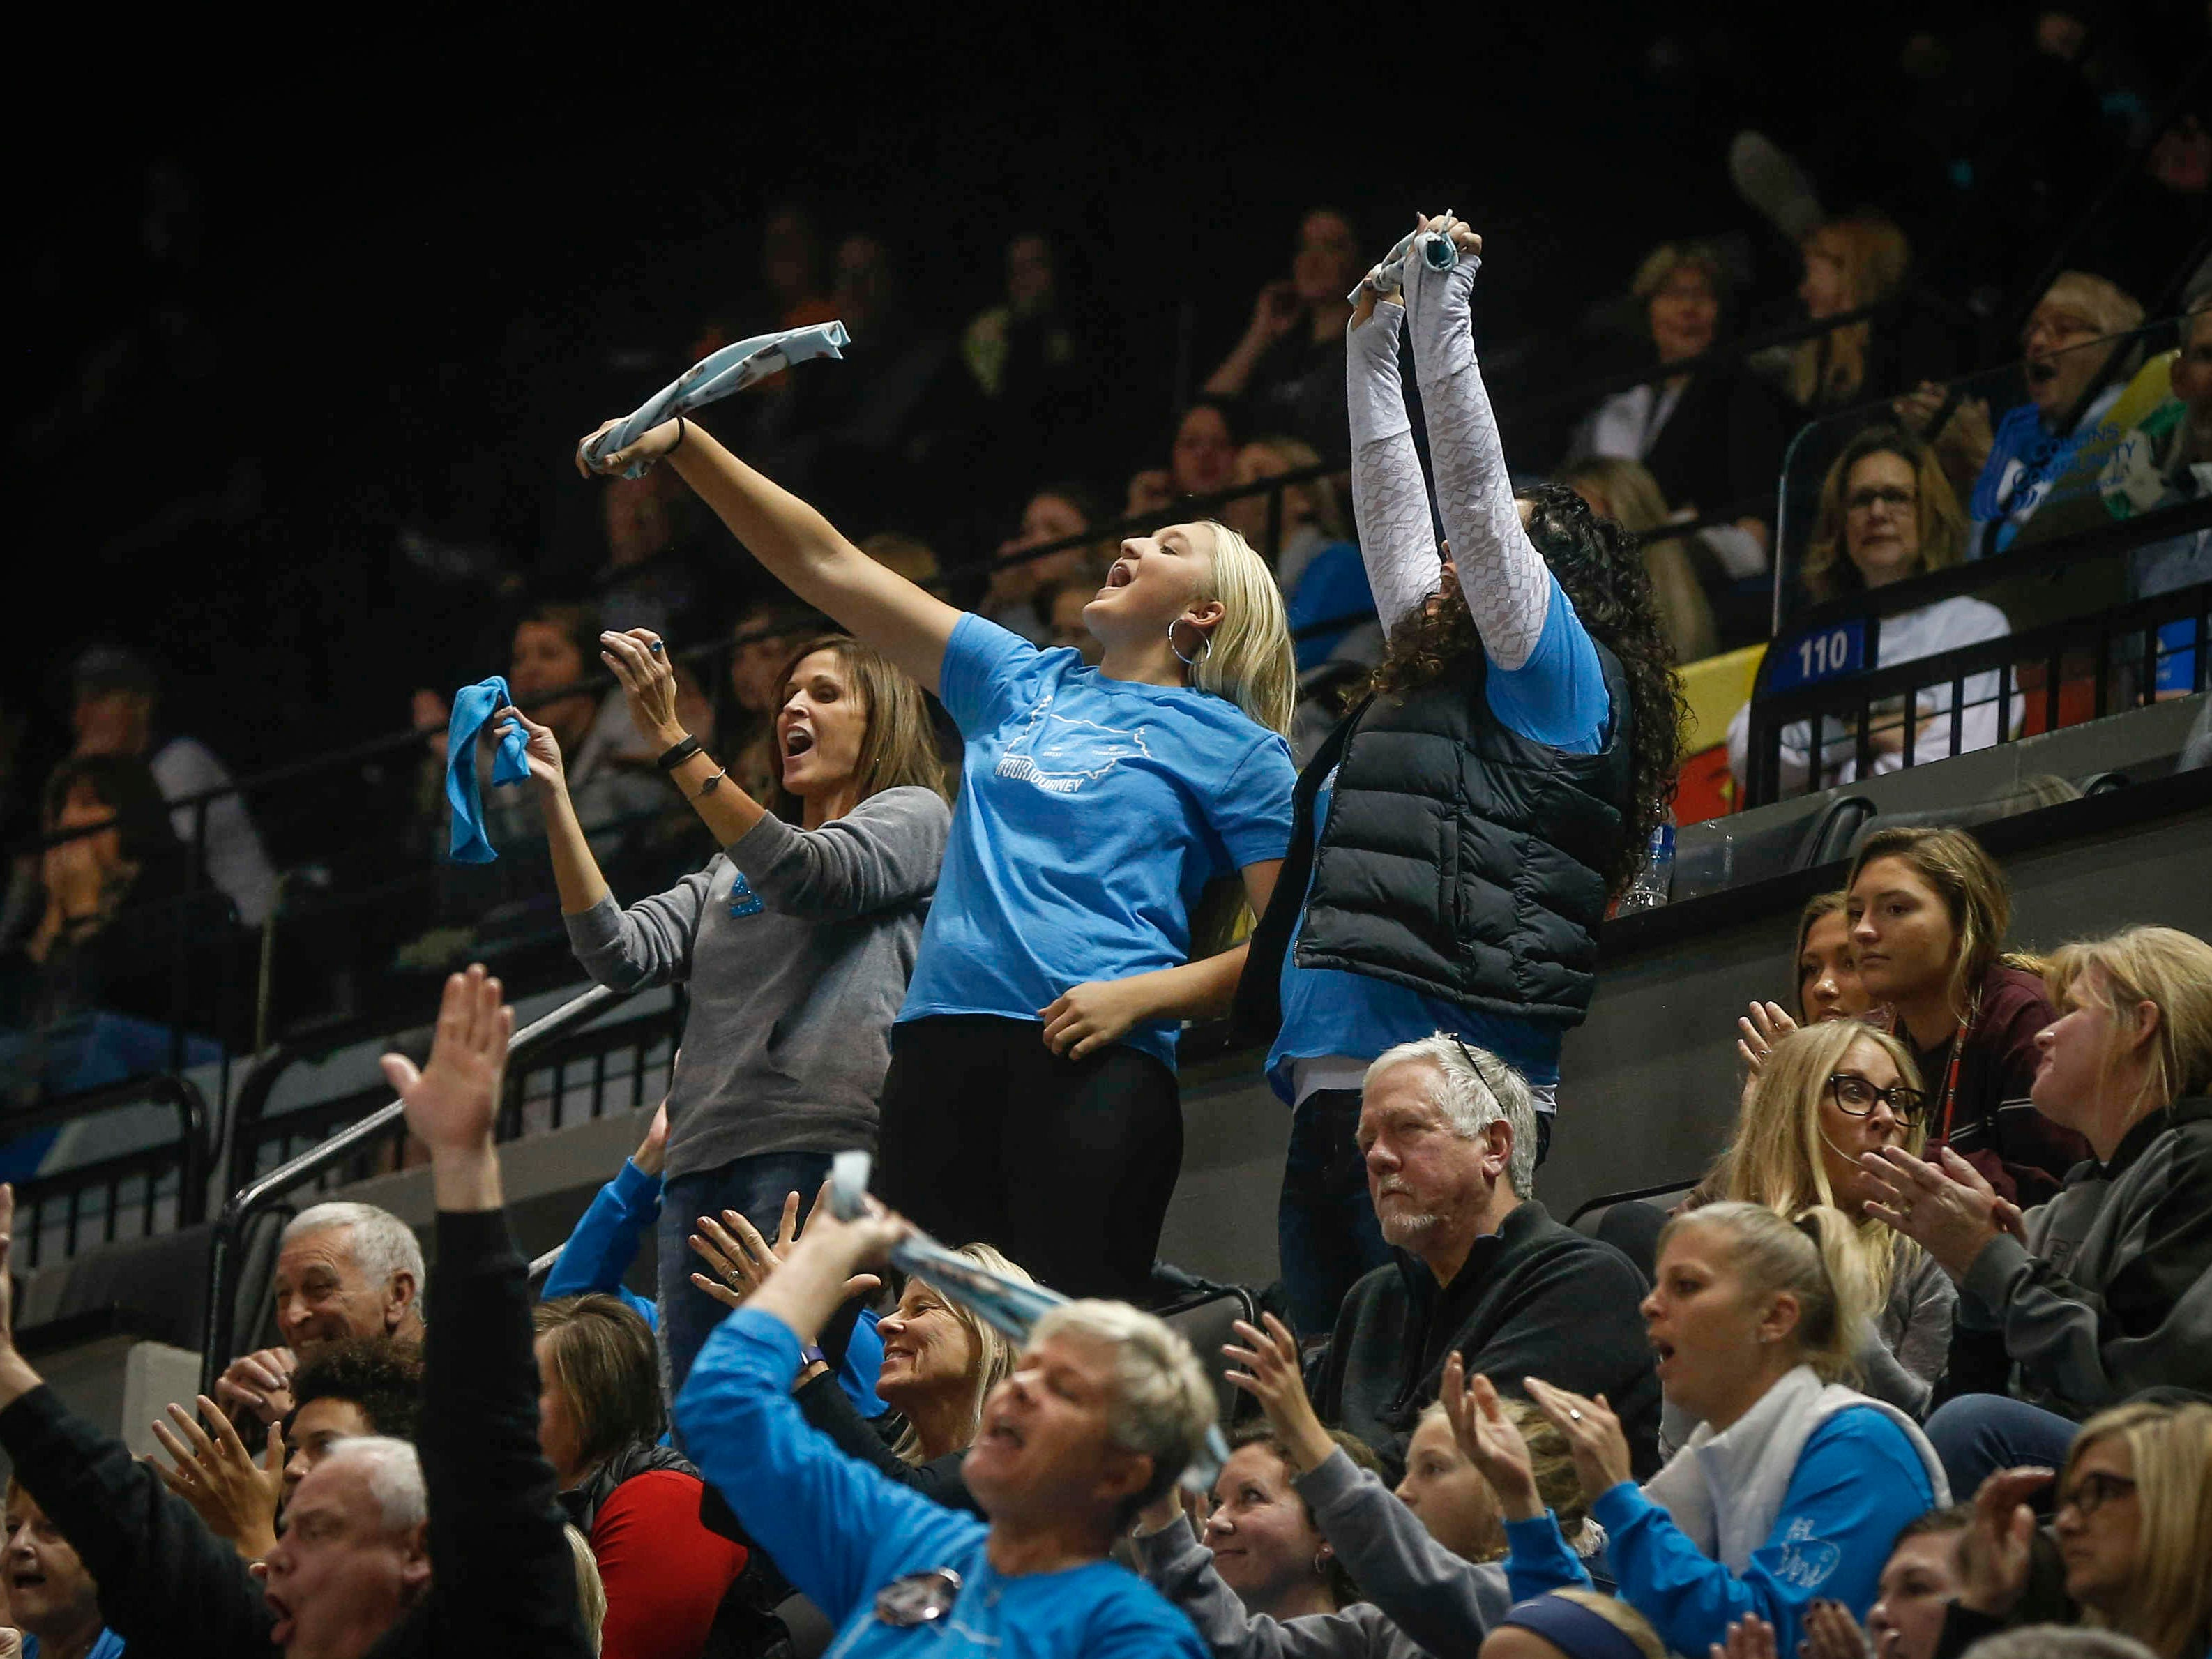 Ankeny Centennial fans celebrate a point against Cedar Falls during the Class 5A state volleyball tournament championship game on Friday, Nov. 9, 2018, in Cedar Rapids.